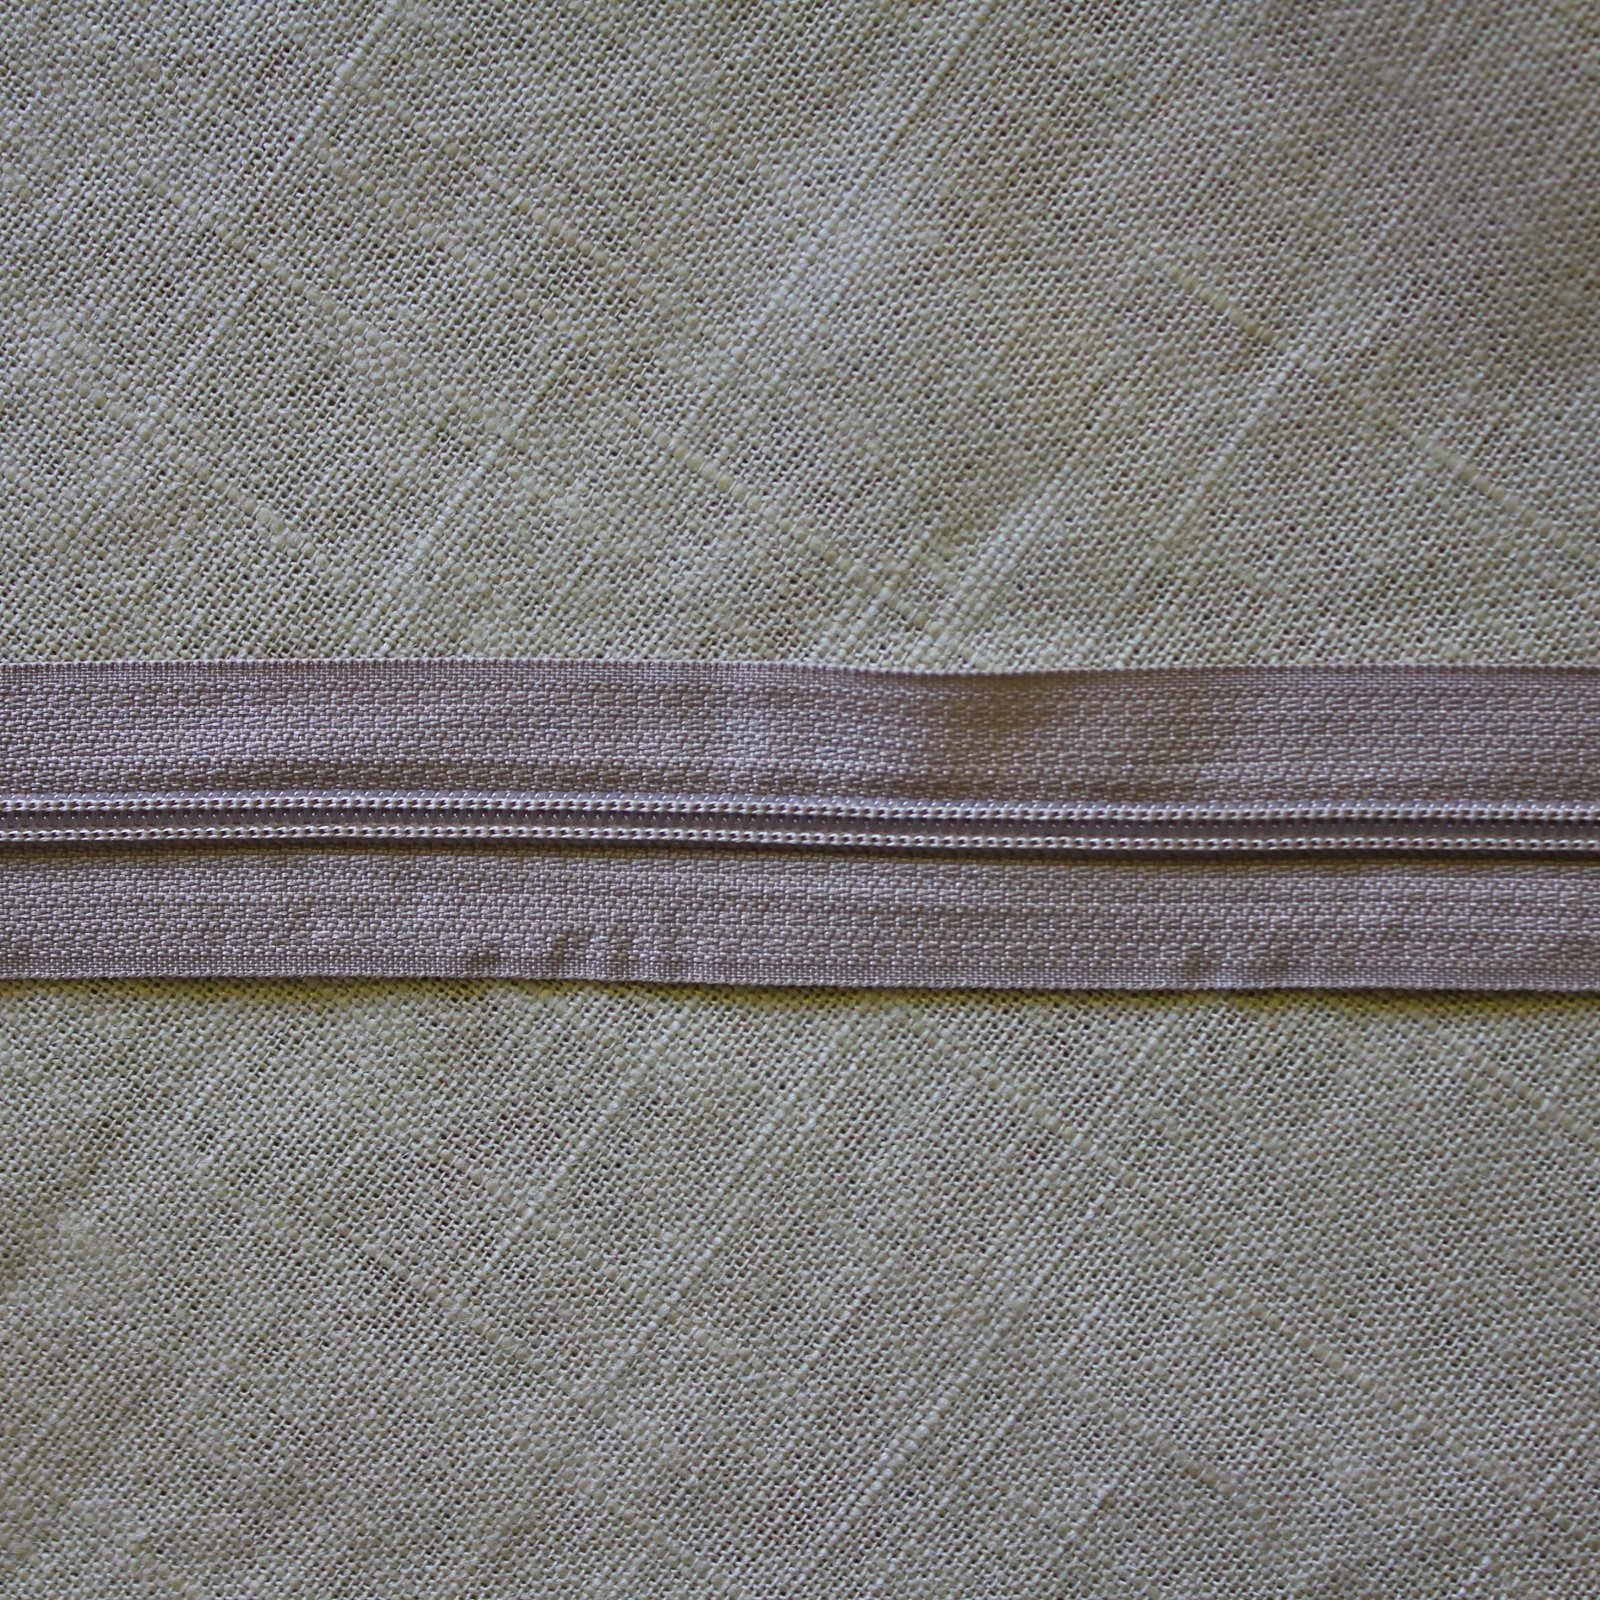 Zipper Nylon 4